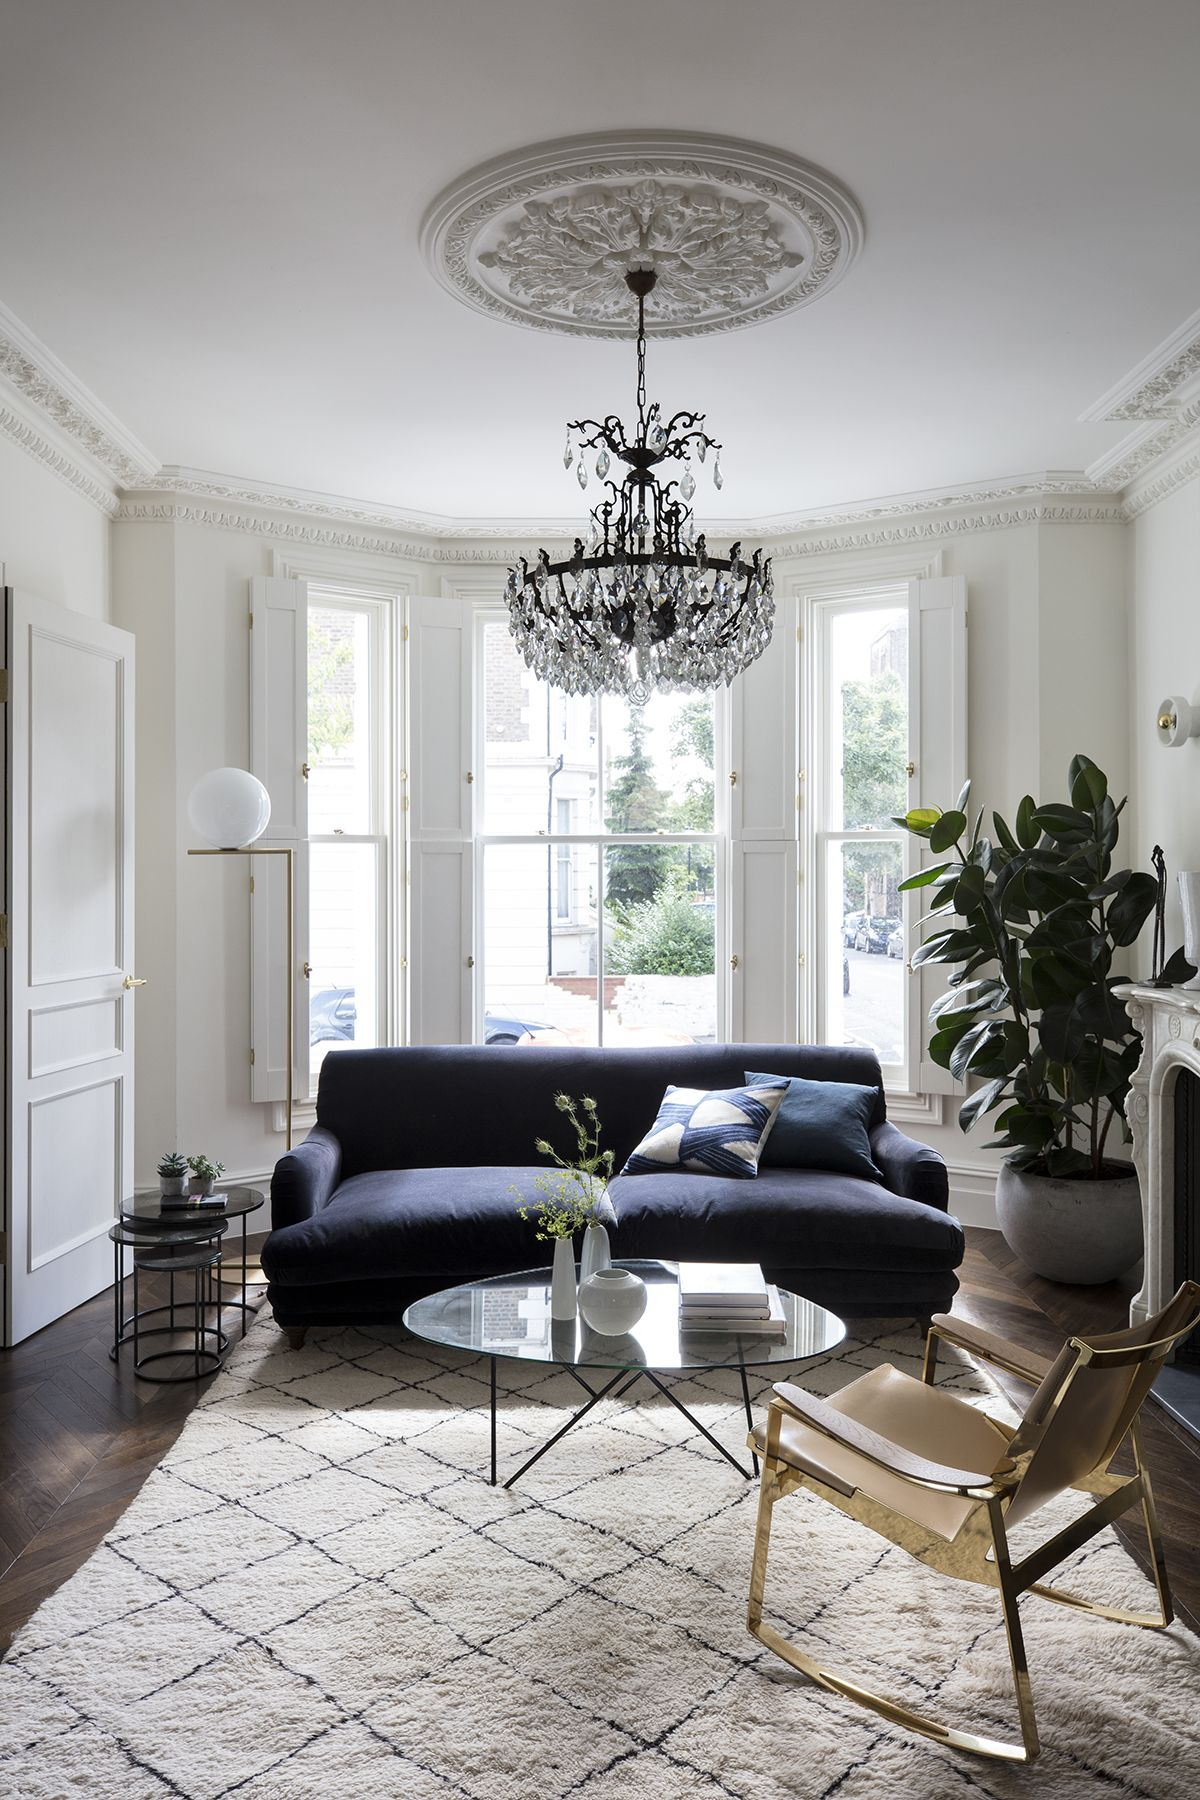 Take a tour of this grand Victorian home with the perfect blend of old and new designs